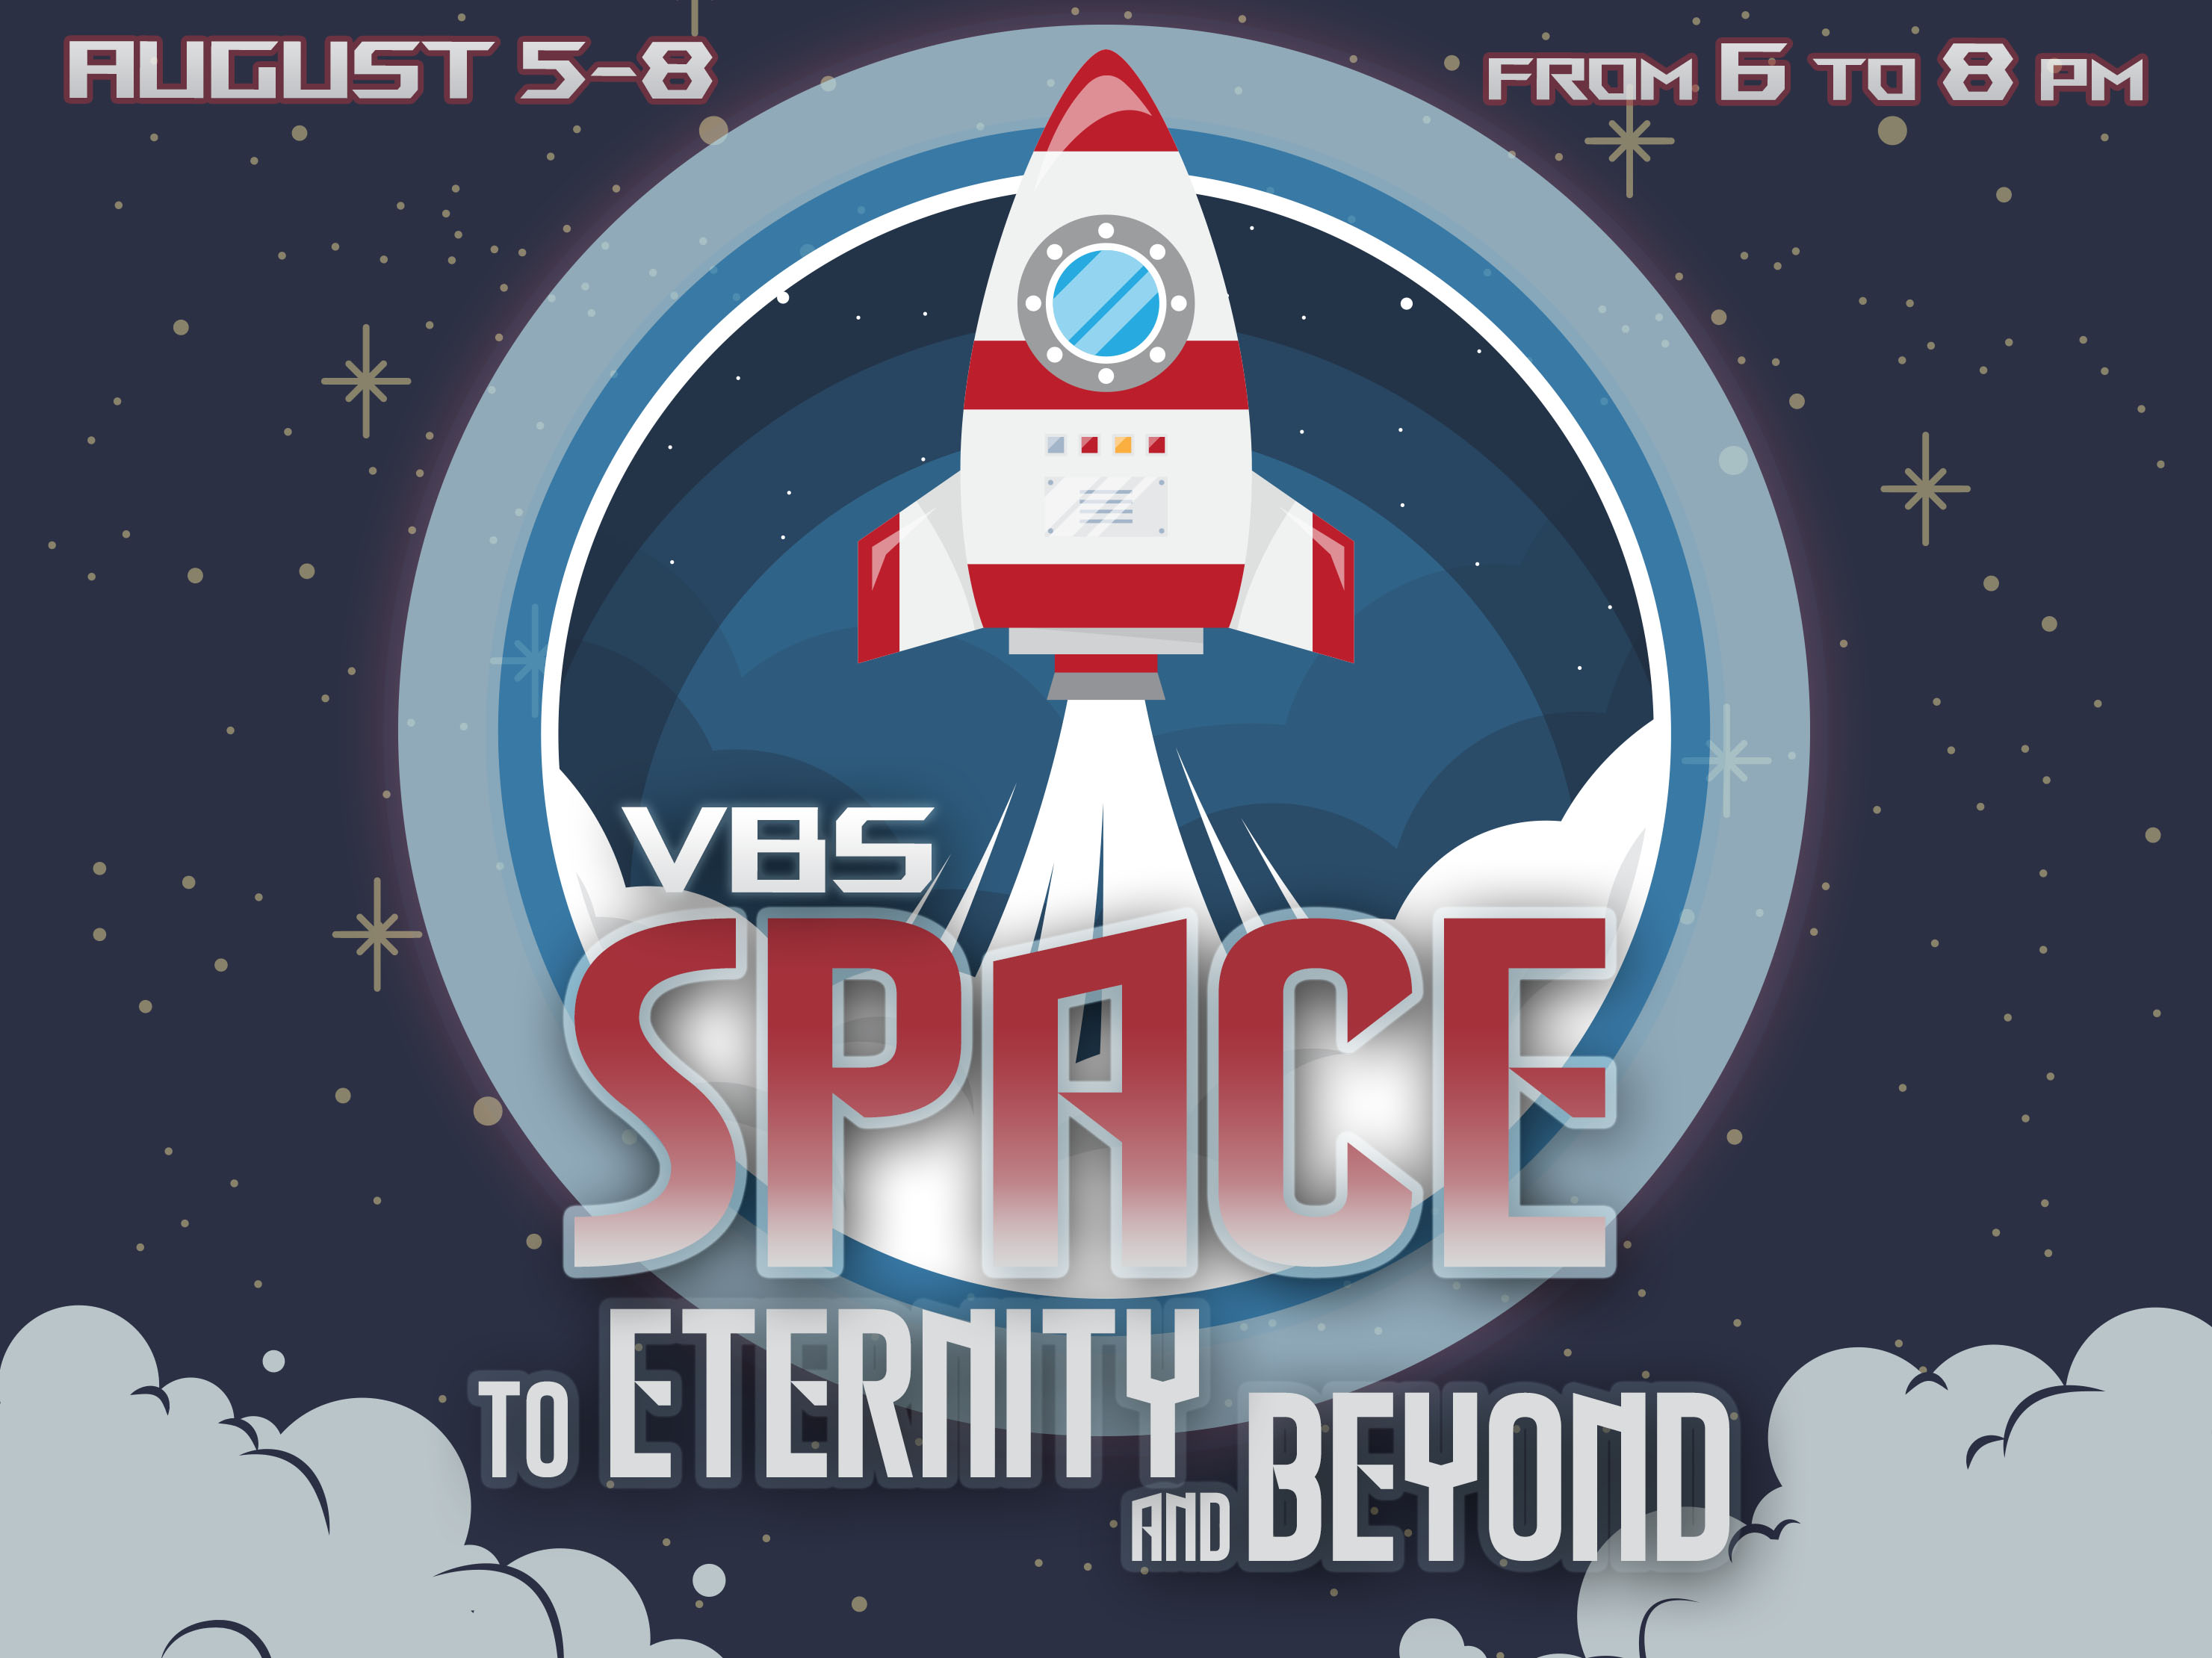 VBS 19 - space